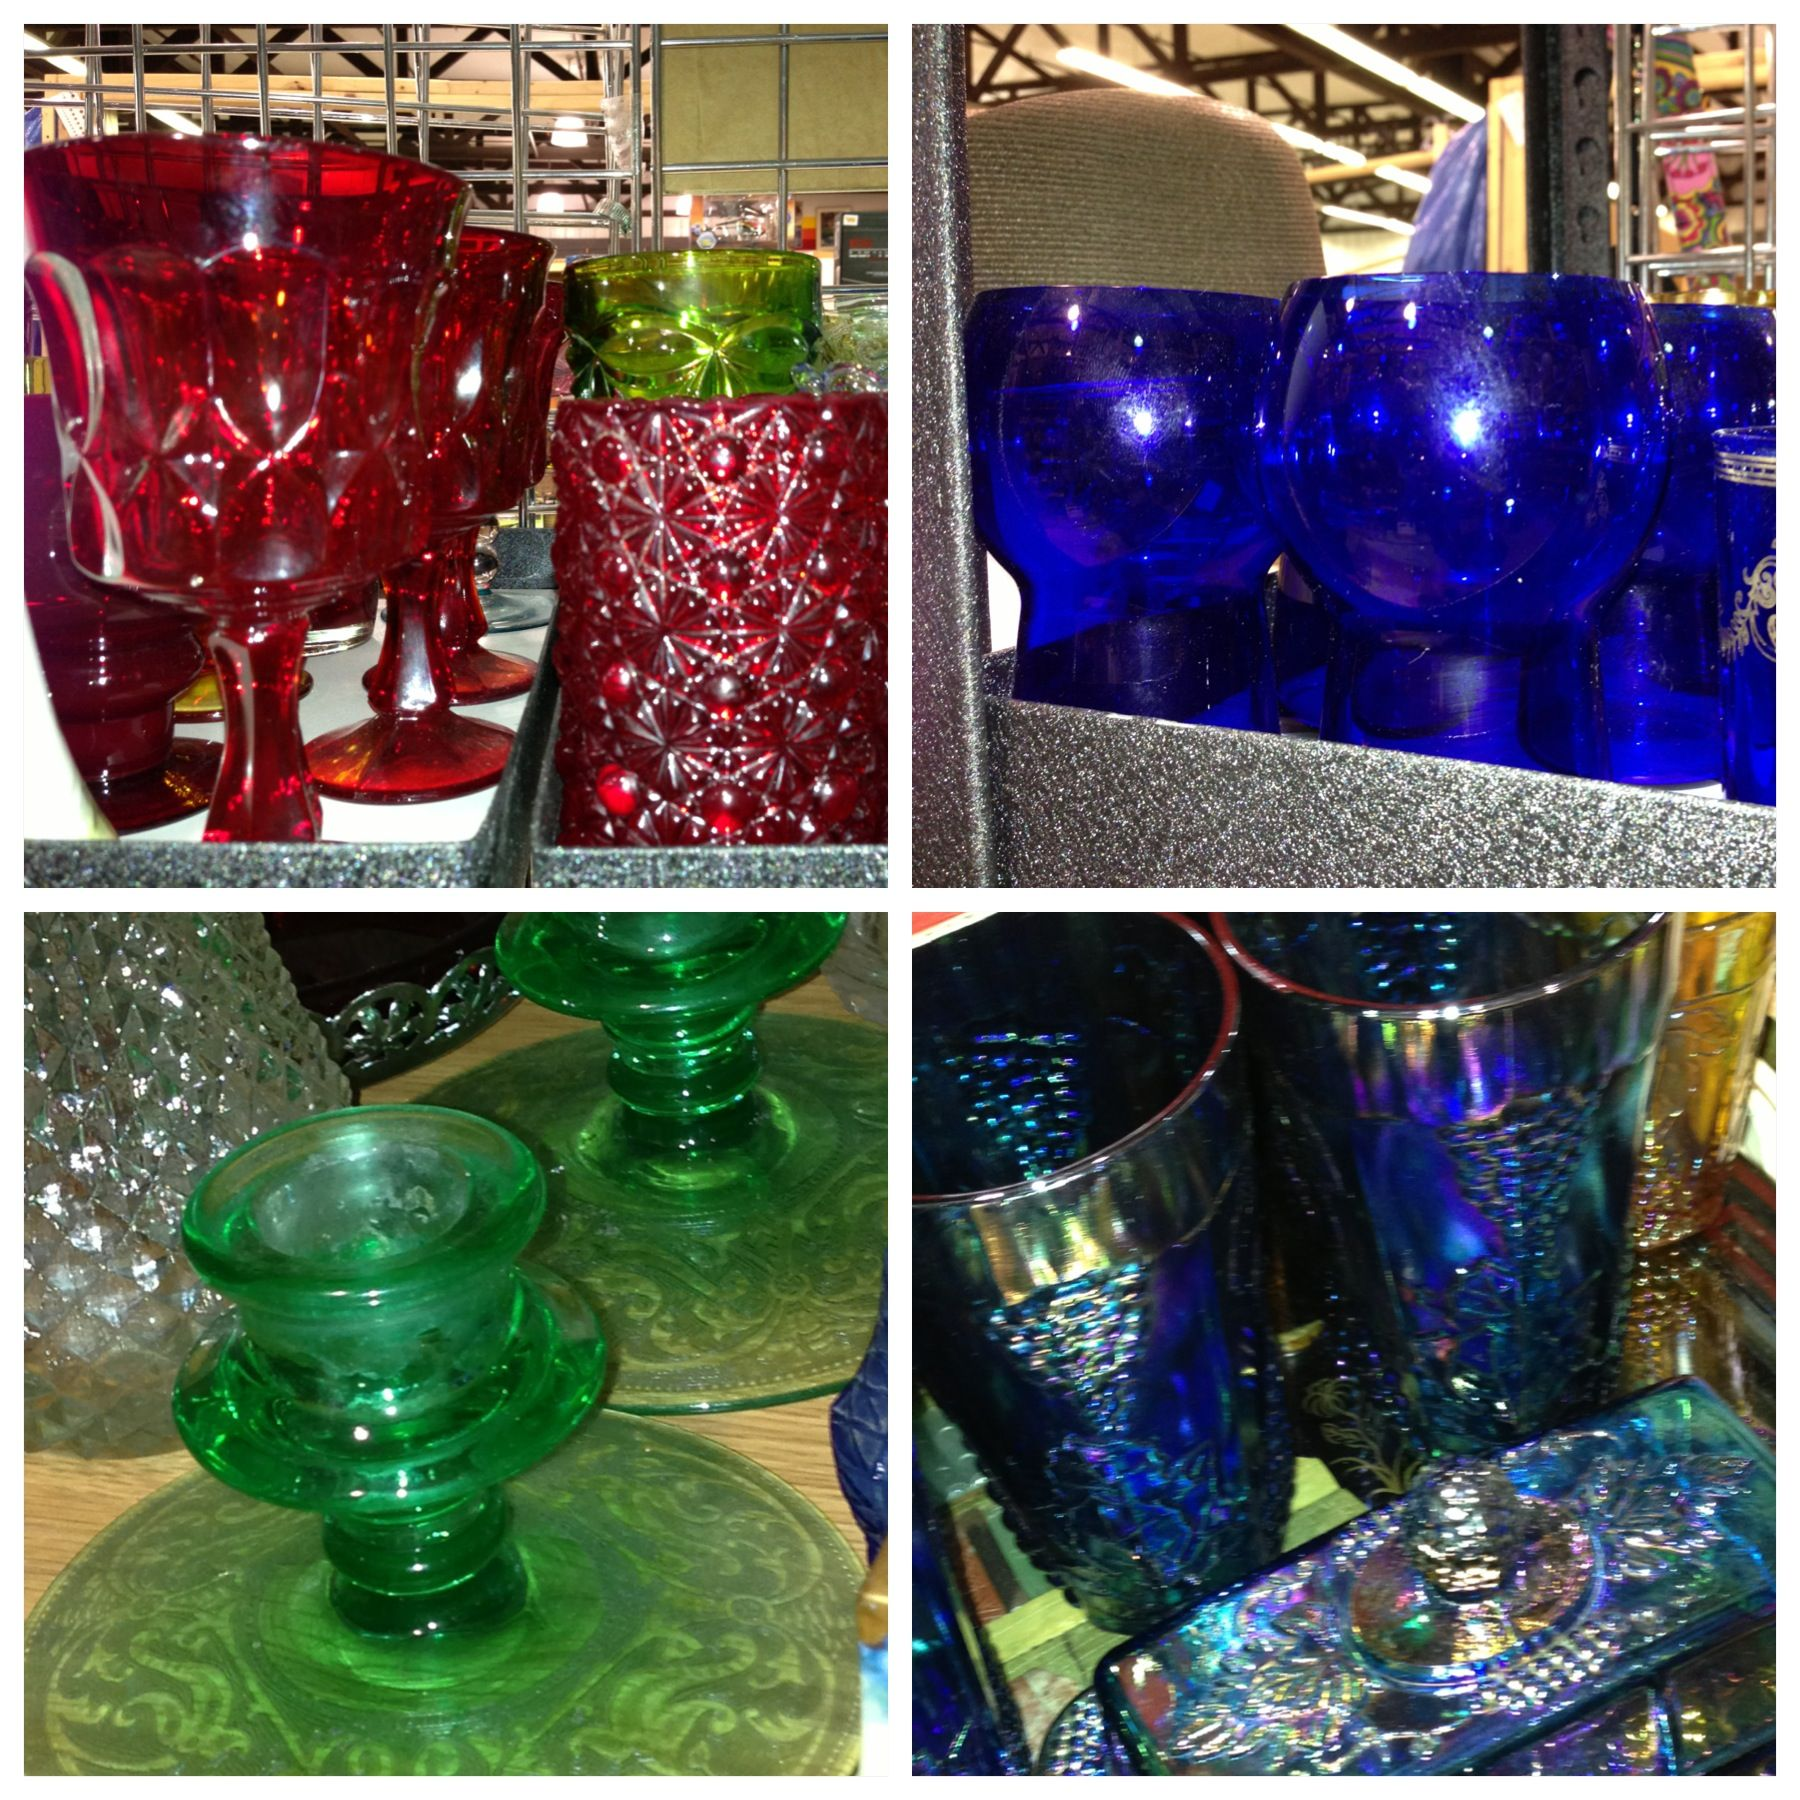 Vintage glassware adds holiday color